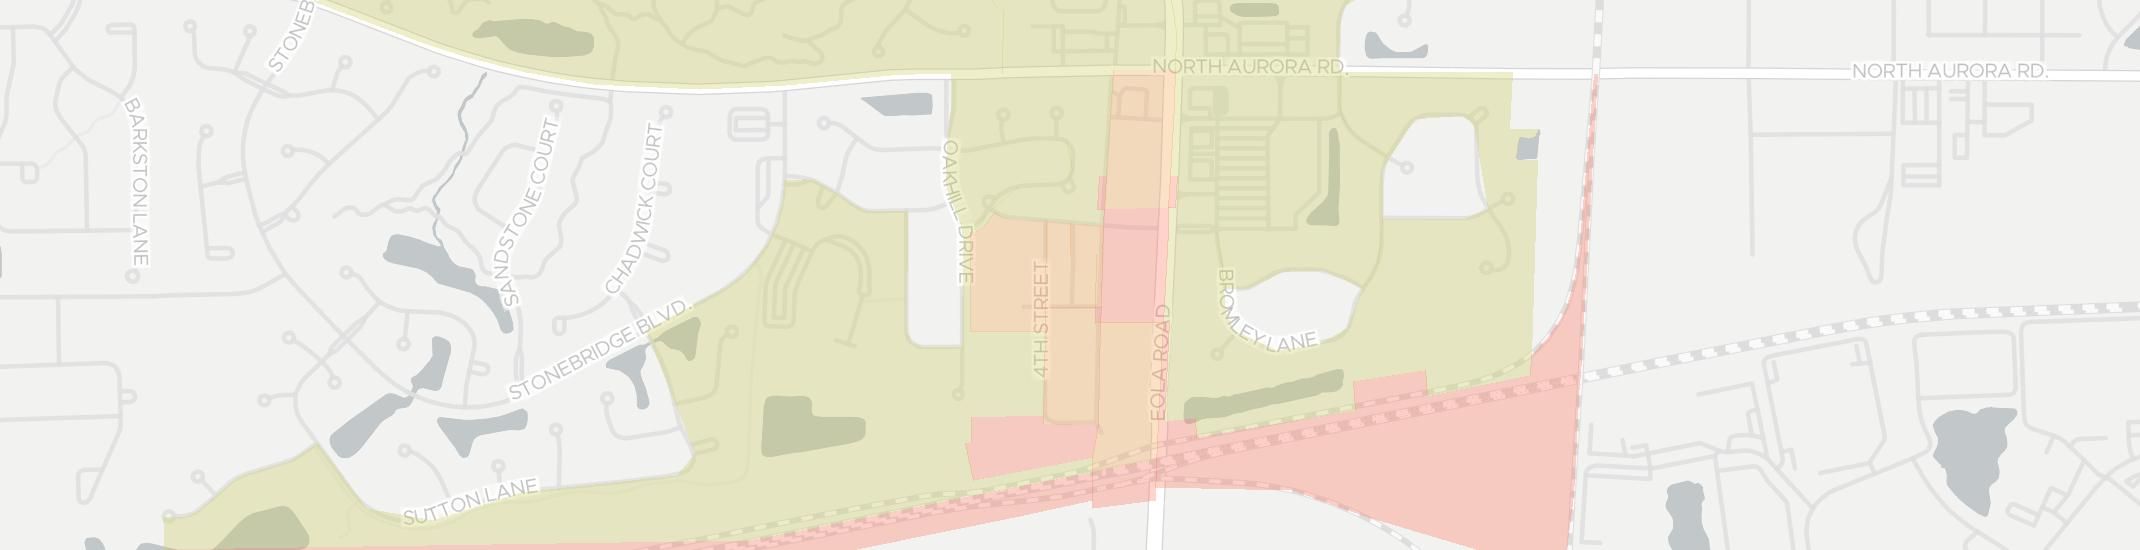 Eola Internet Competition Map. Click for interactive map.